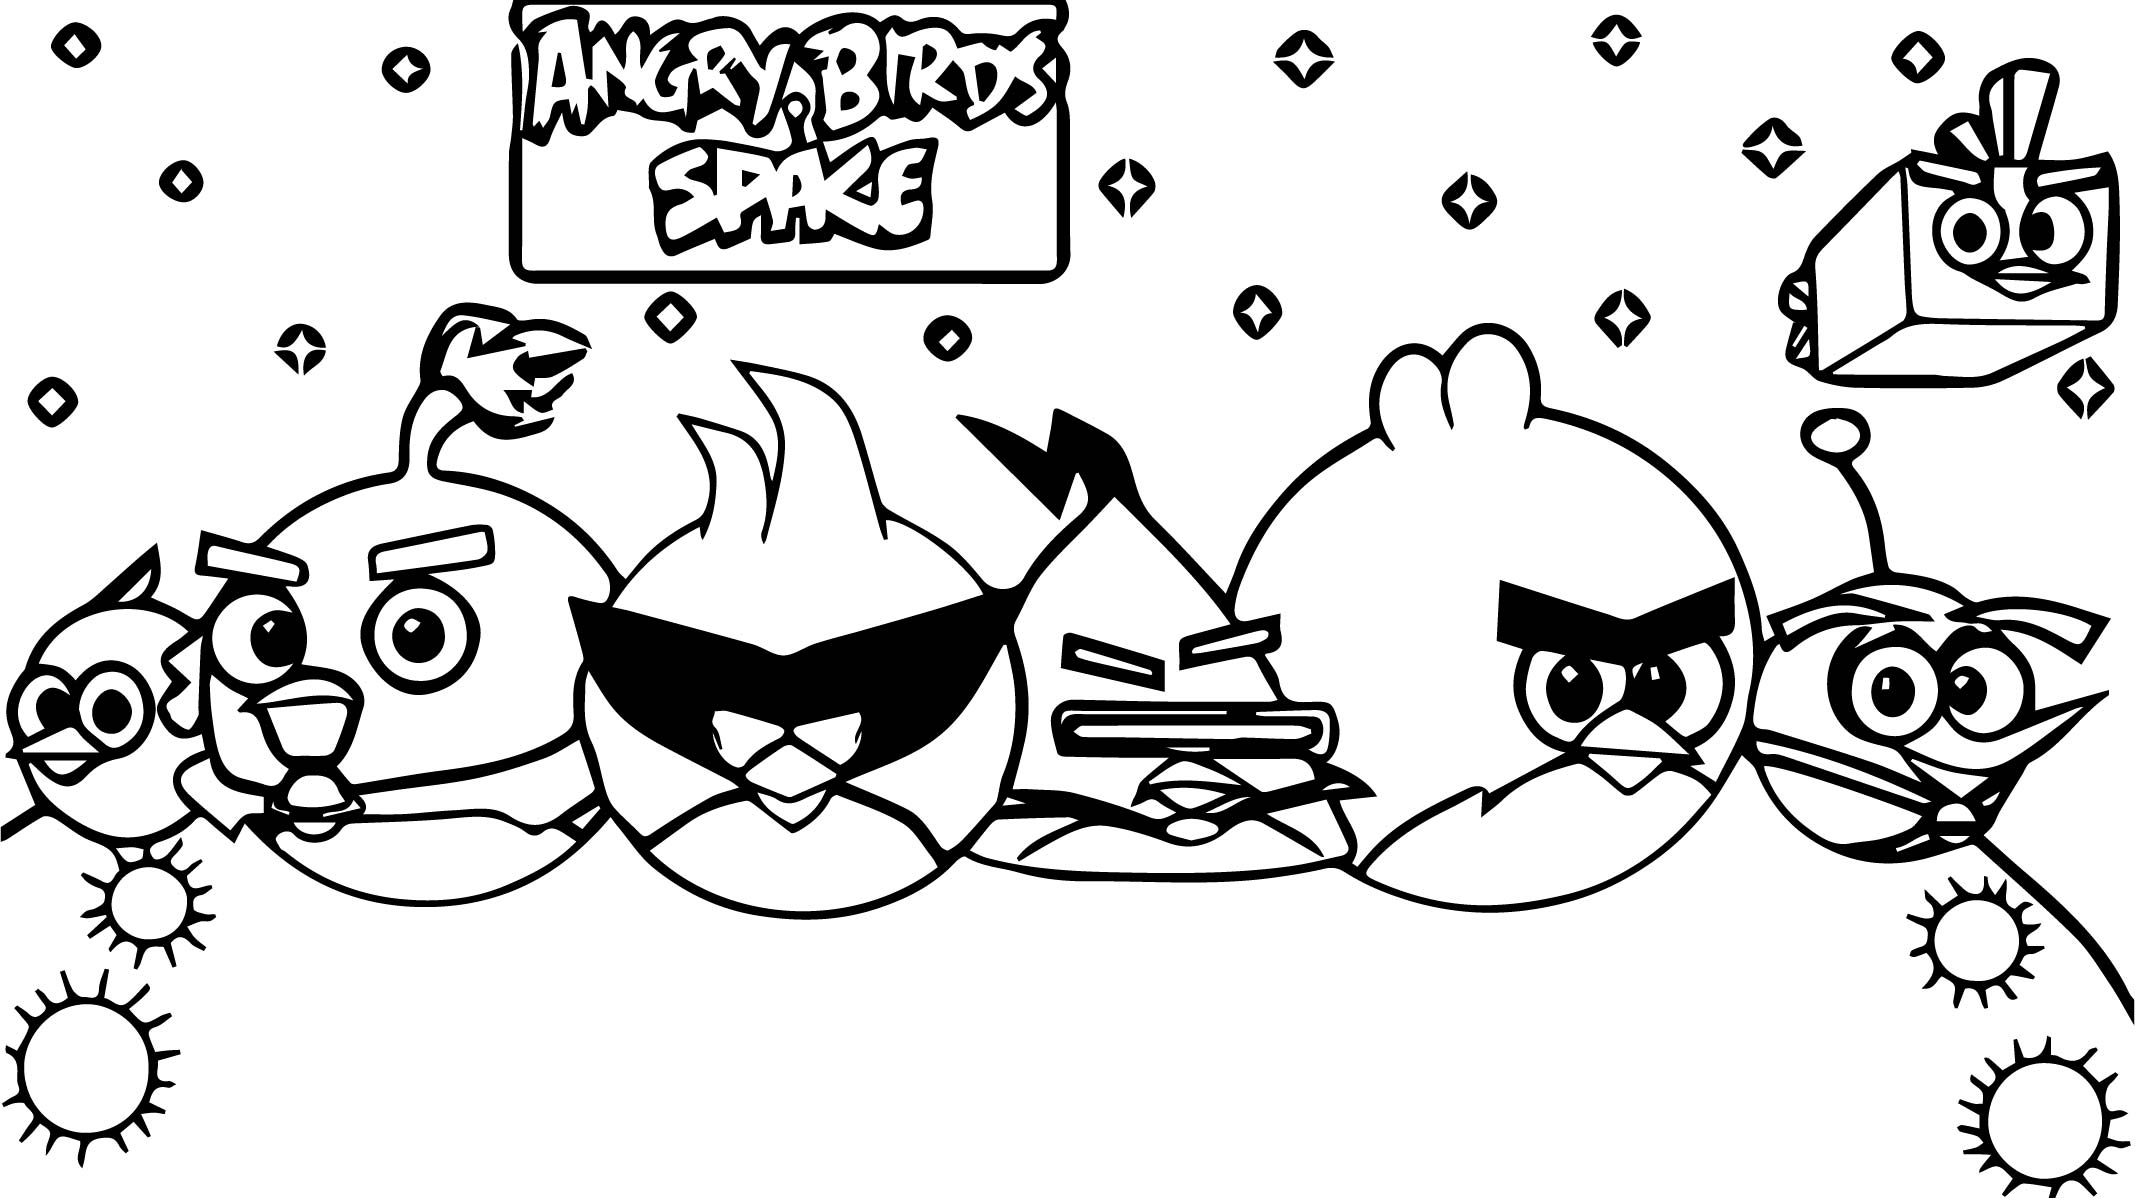 Colorful Angry Birds Space Coloring Pages Ice Bird